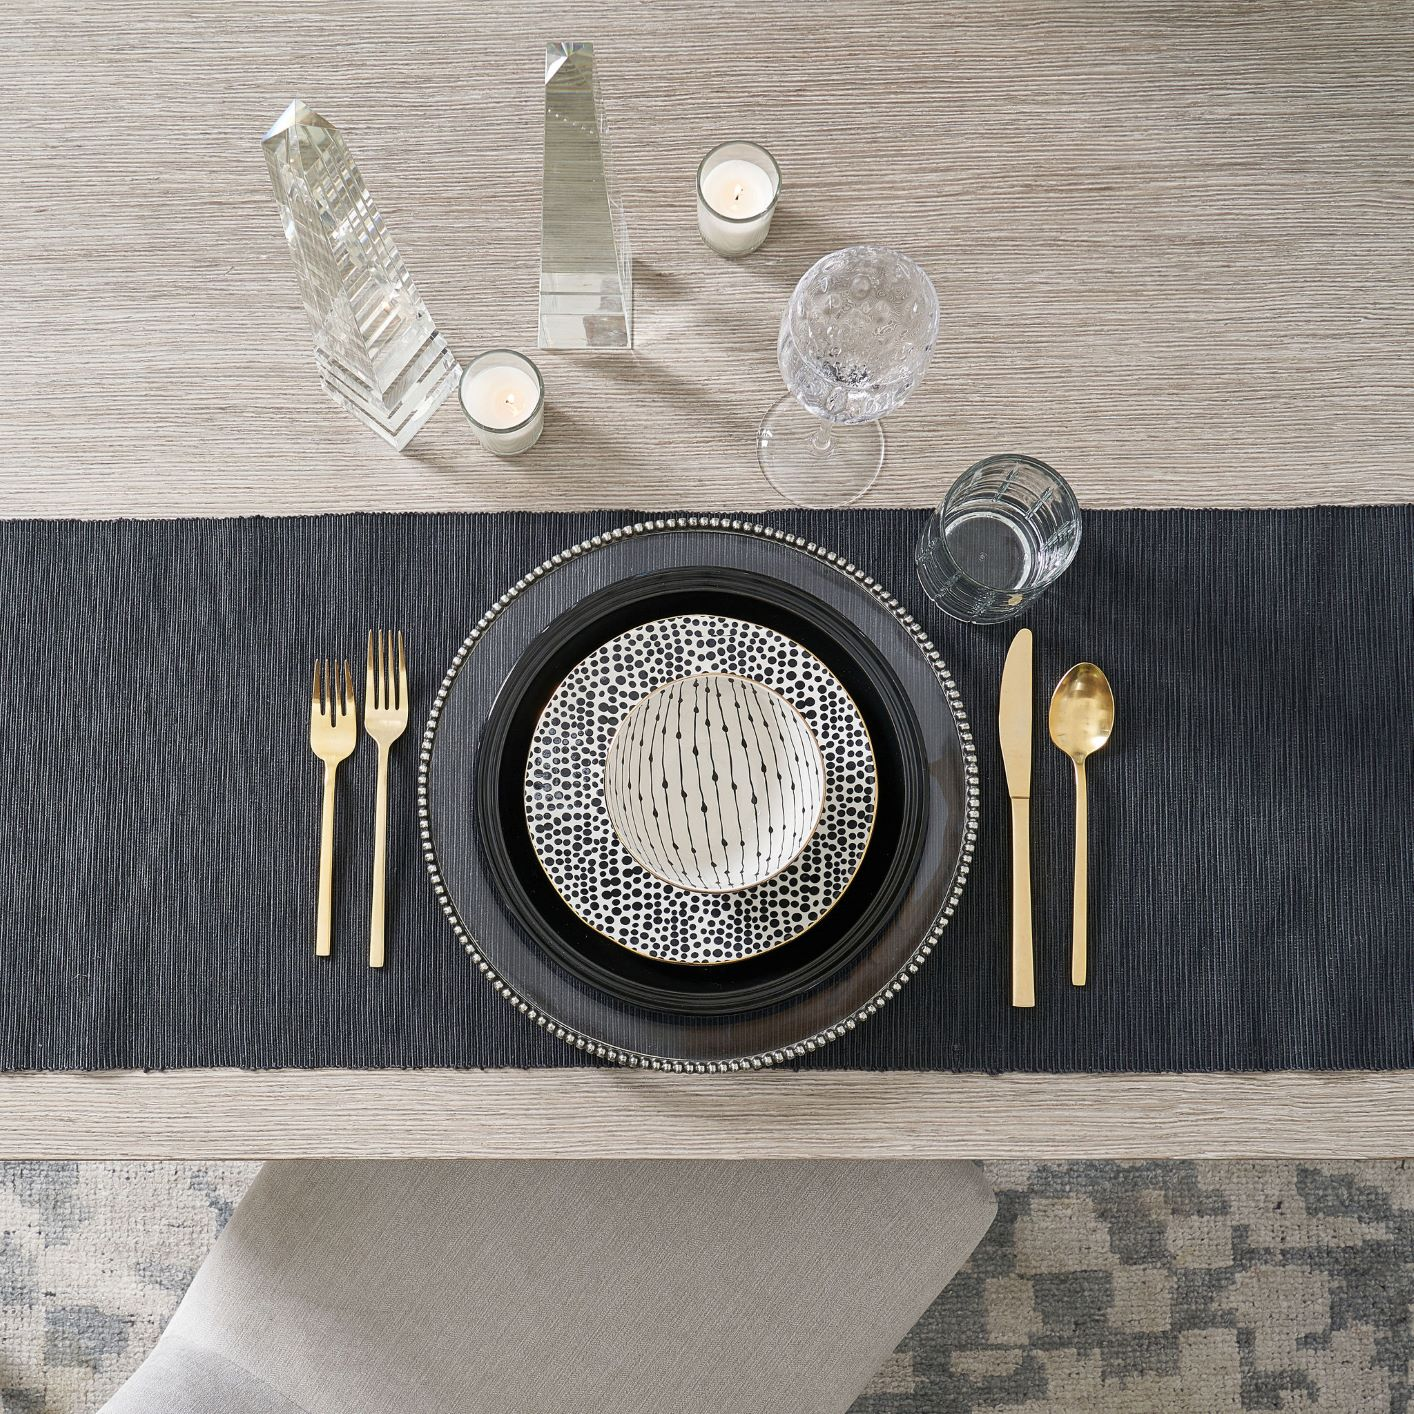 table with black tablecloth, plate, gold flatware, glasses, and patterned bowls